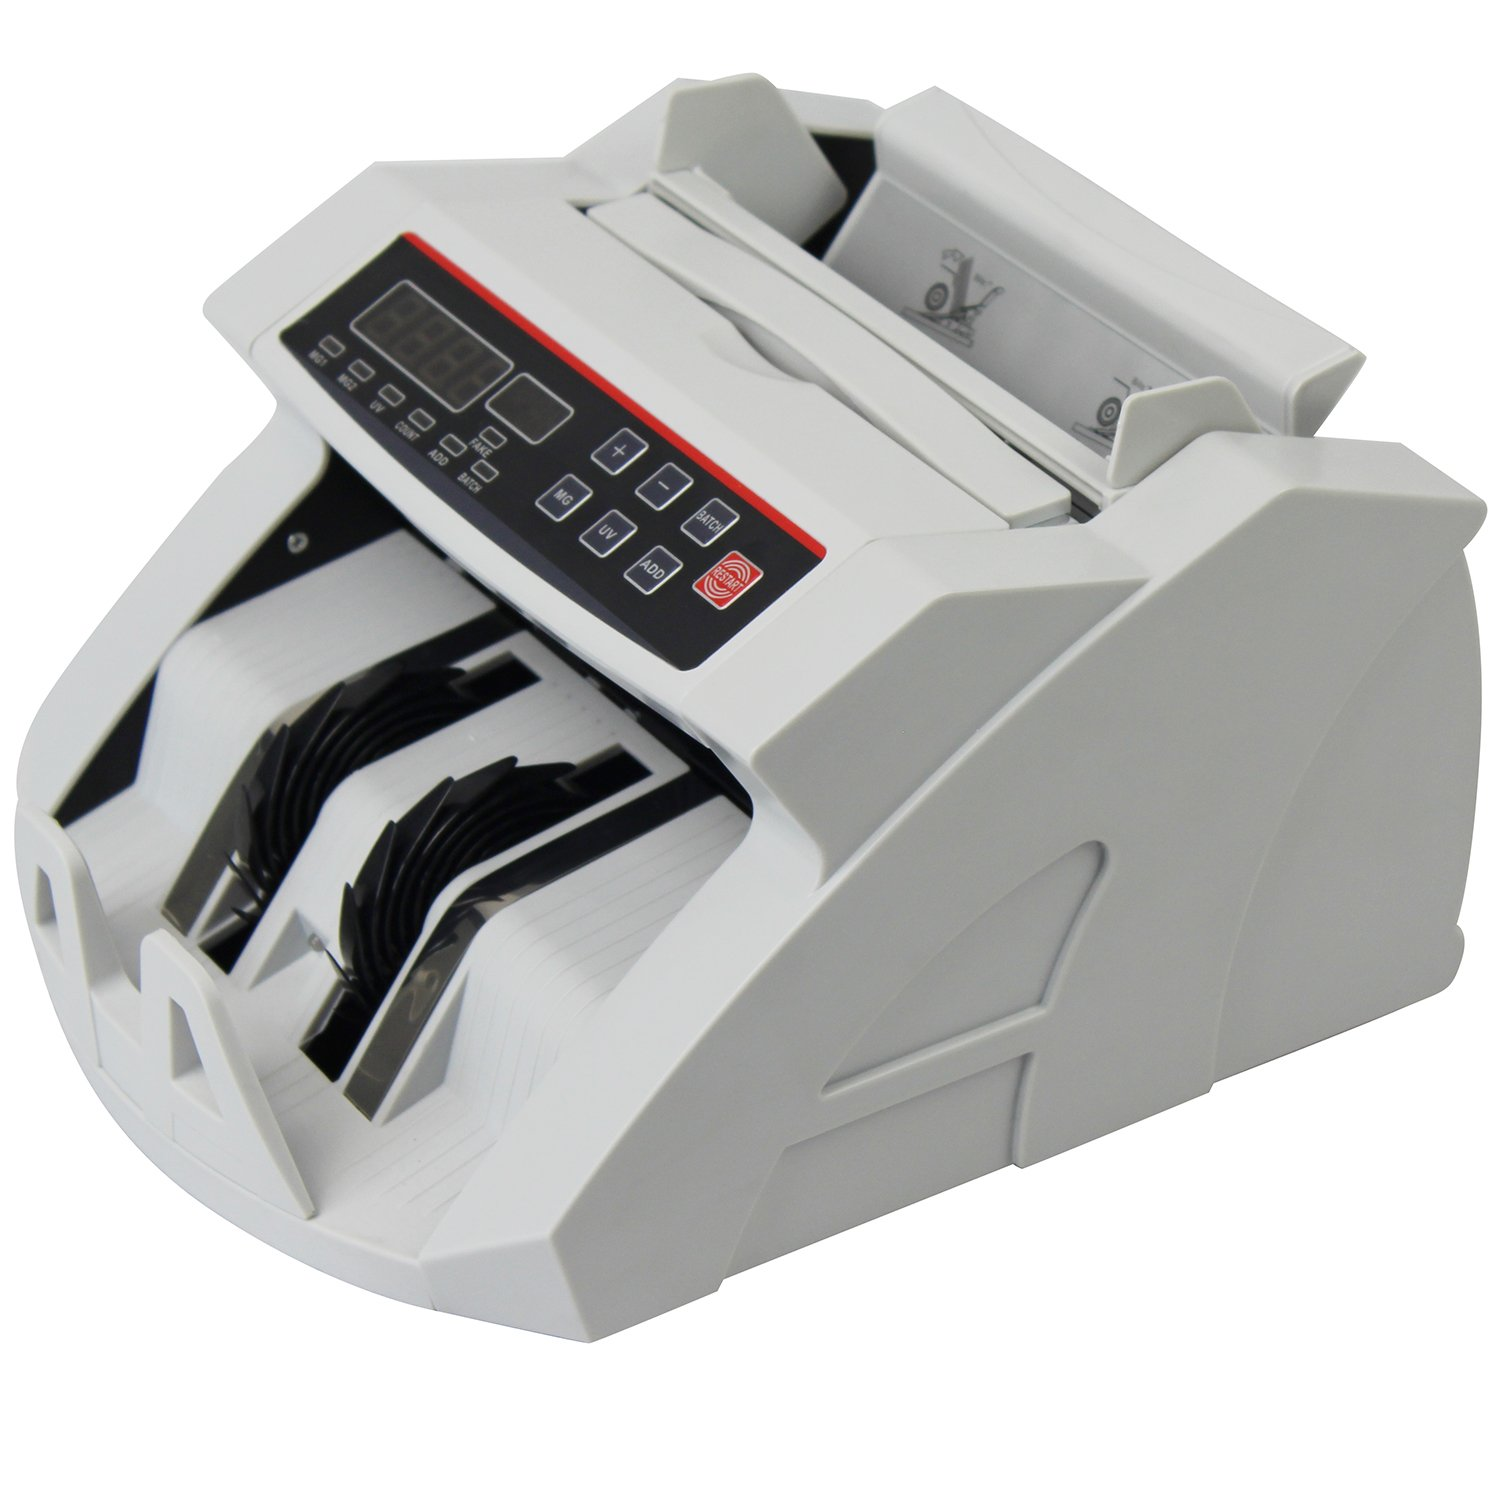 Ovovo Money Counter Currency Counter Bill Counting Machine with UV/MG Counterfeit Detection